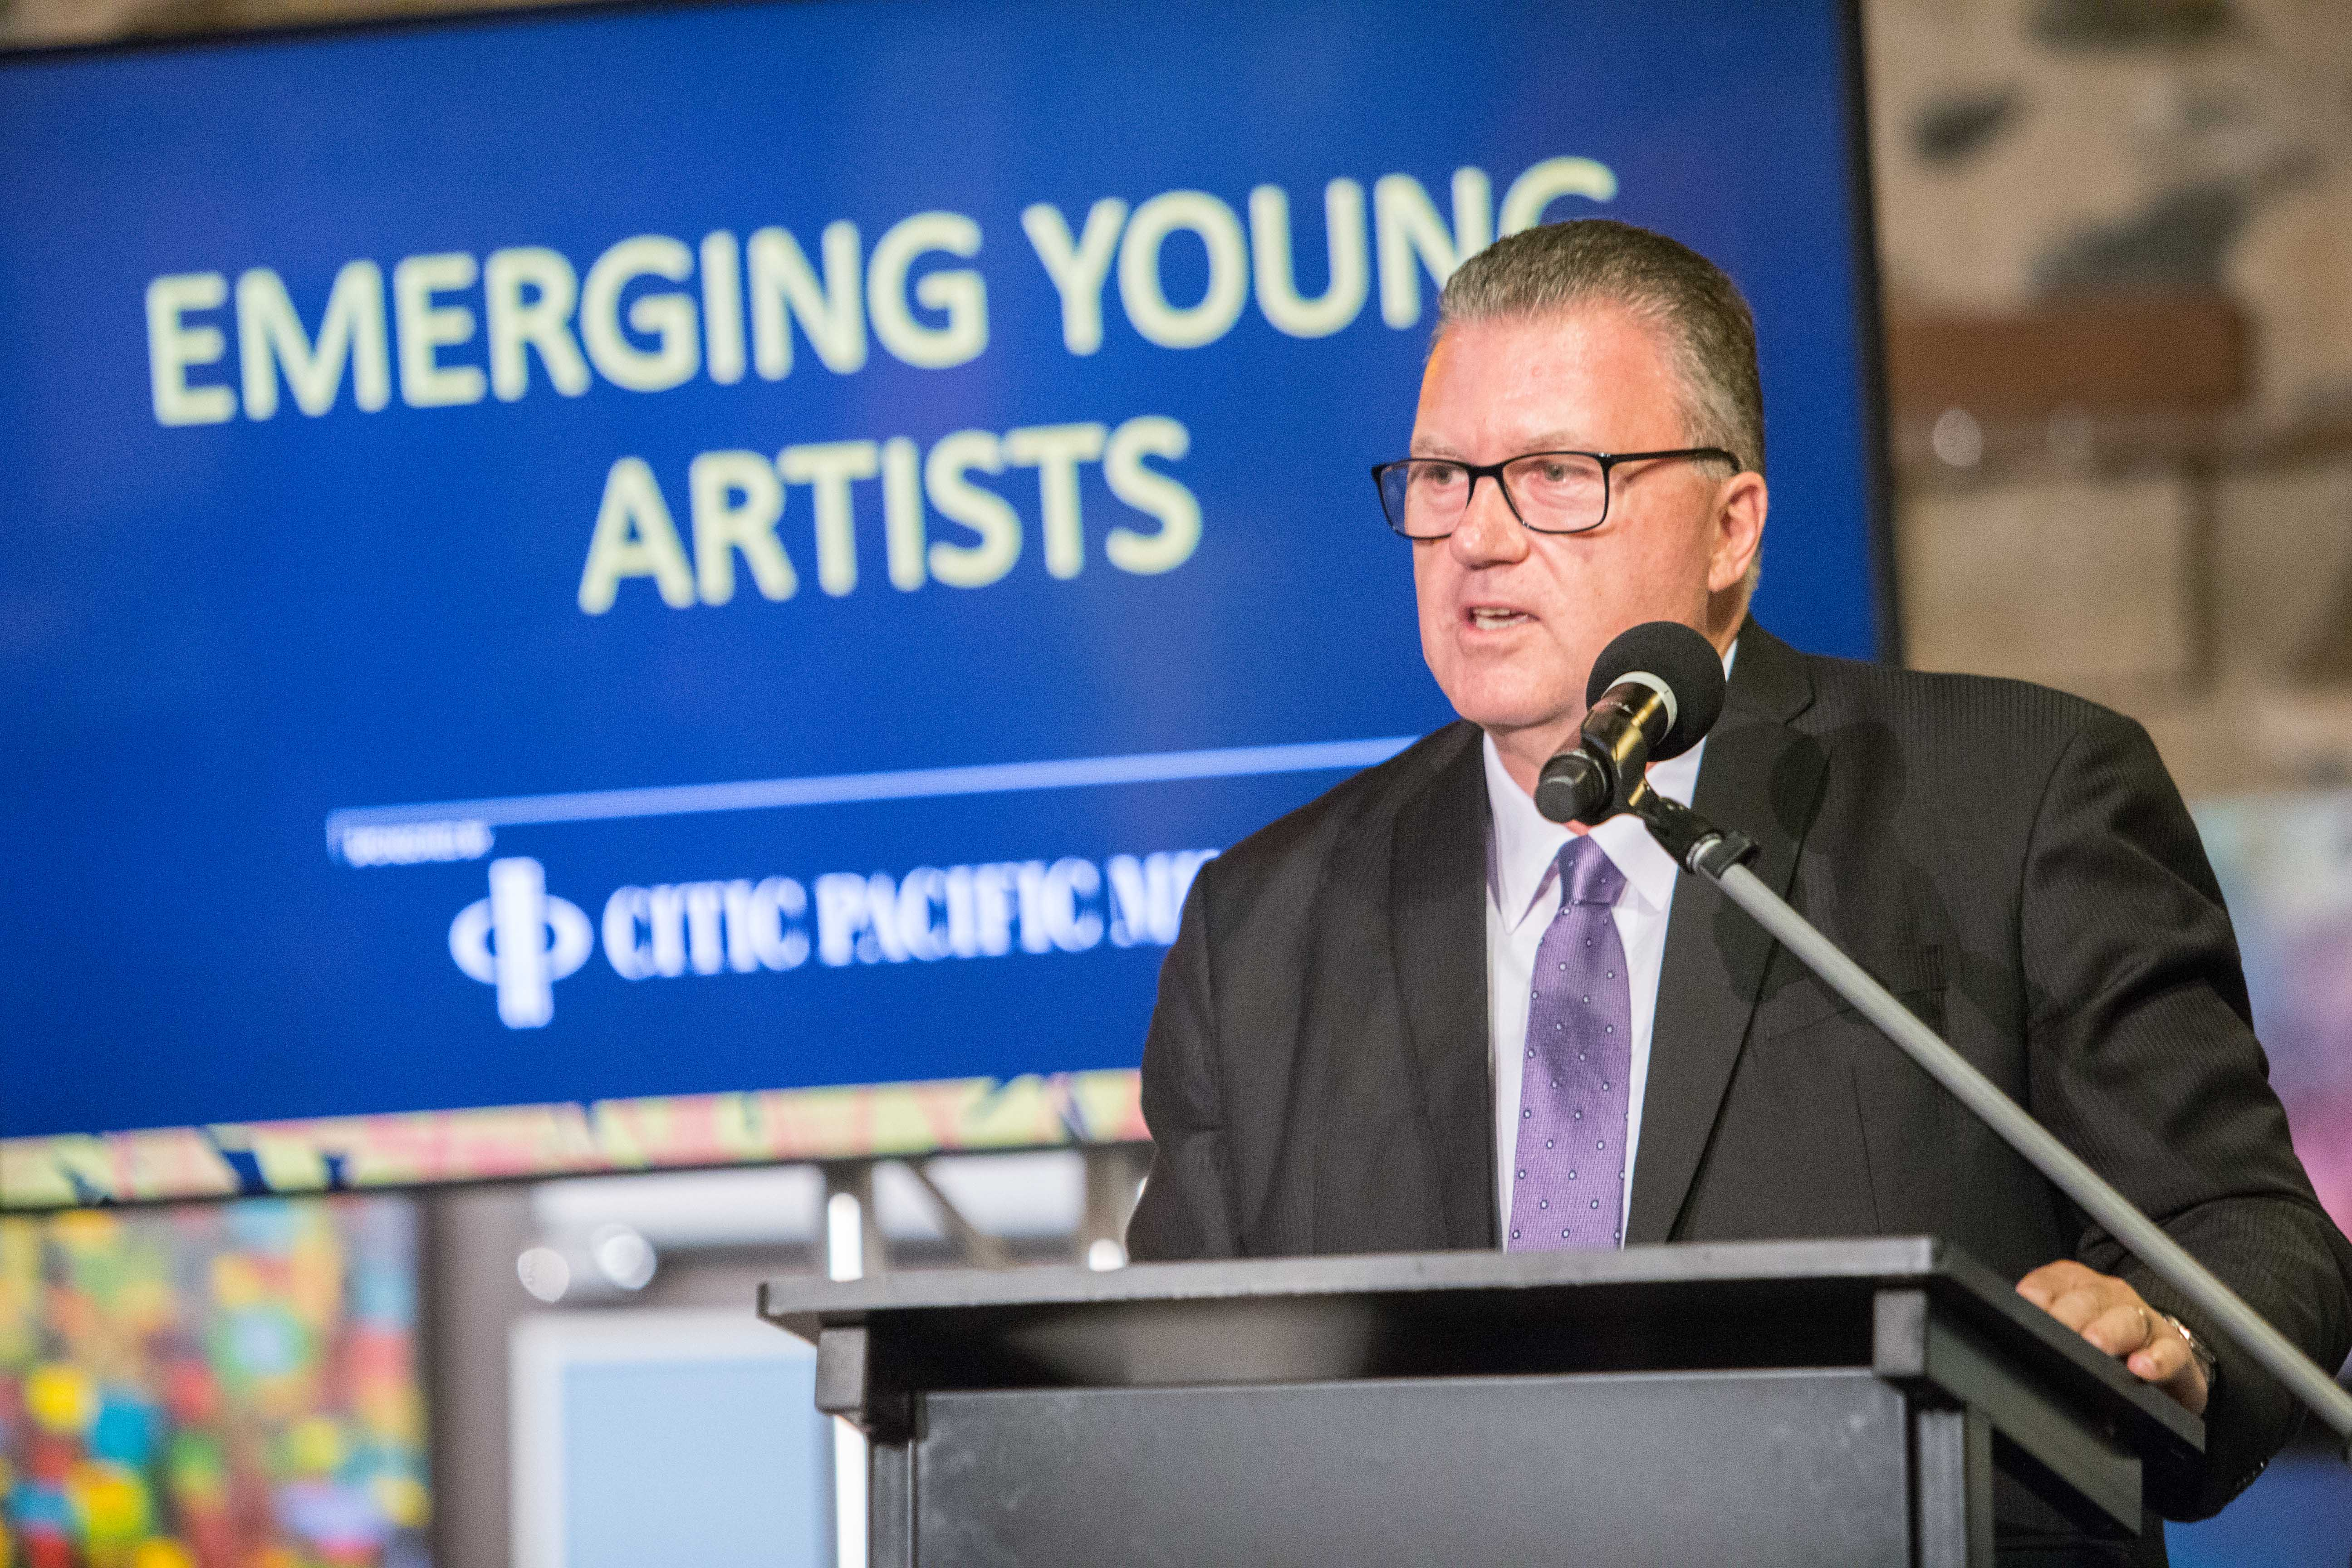 Image of Gary Rayson presenting Emerging Young Artists award at Cossack Art gala 2019